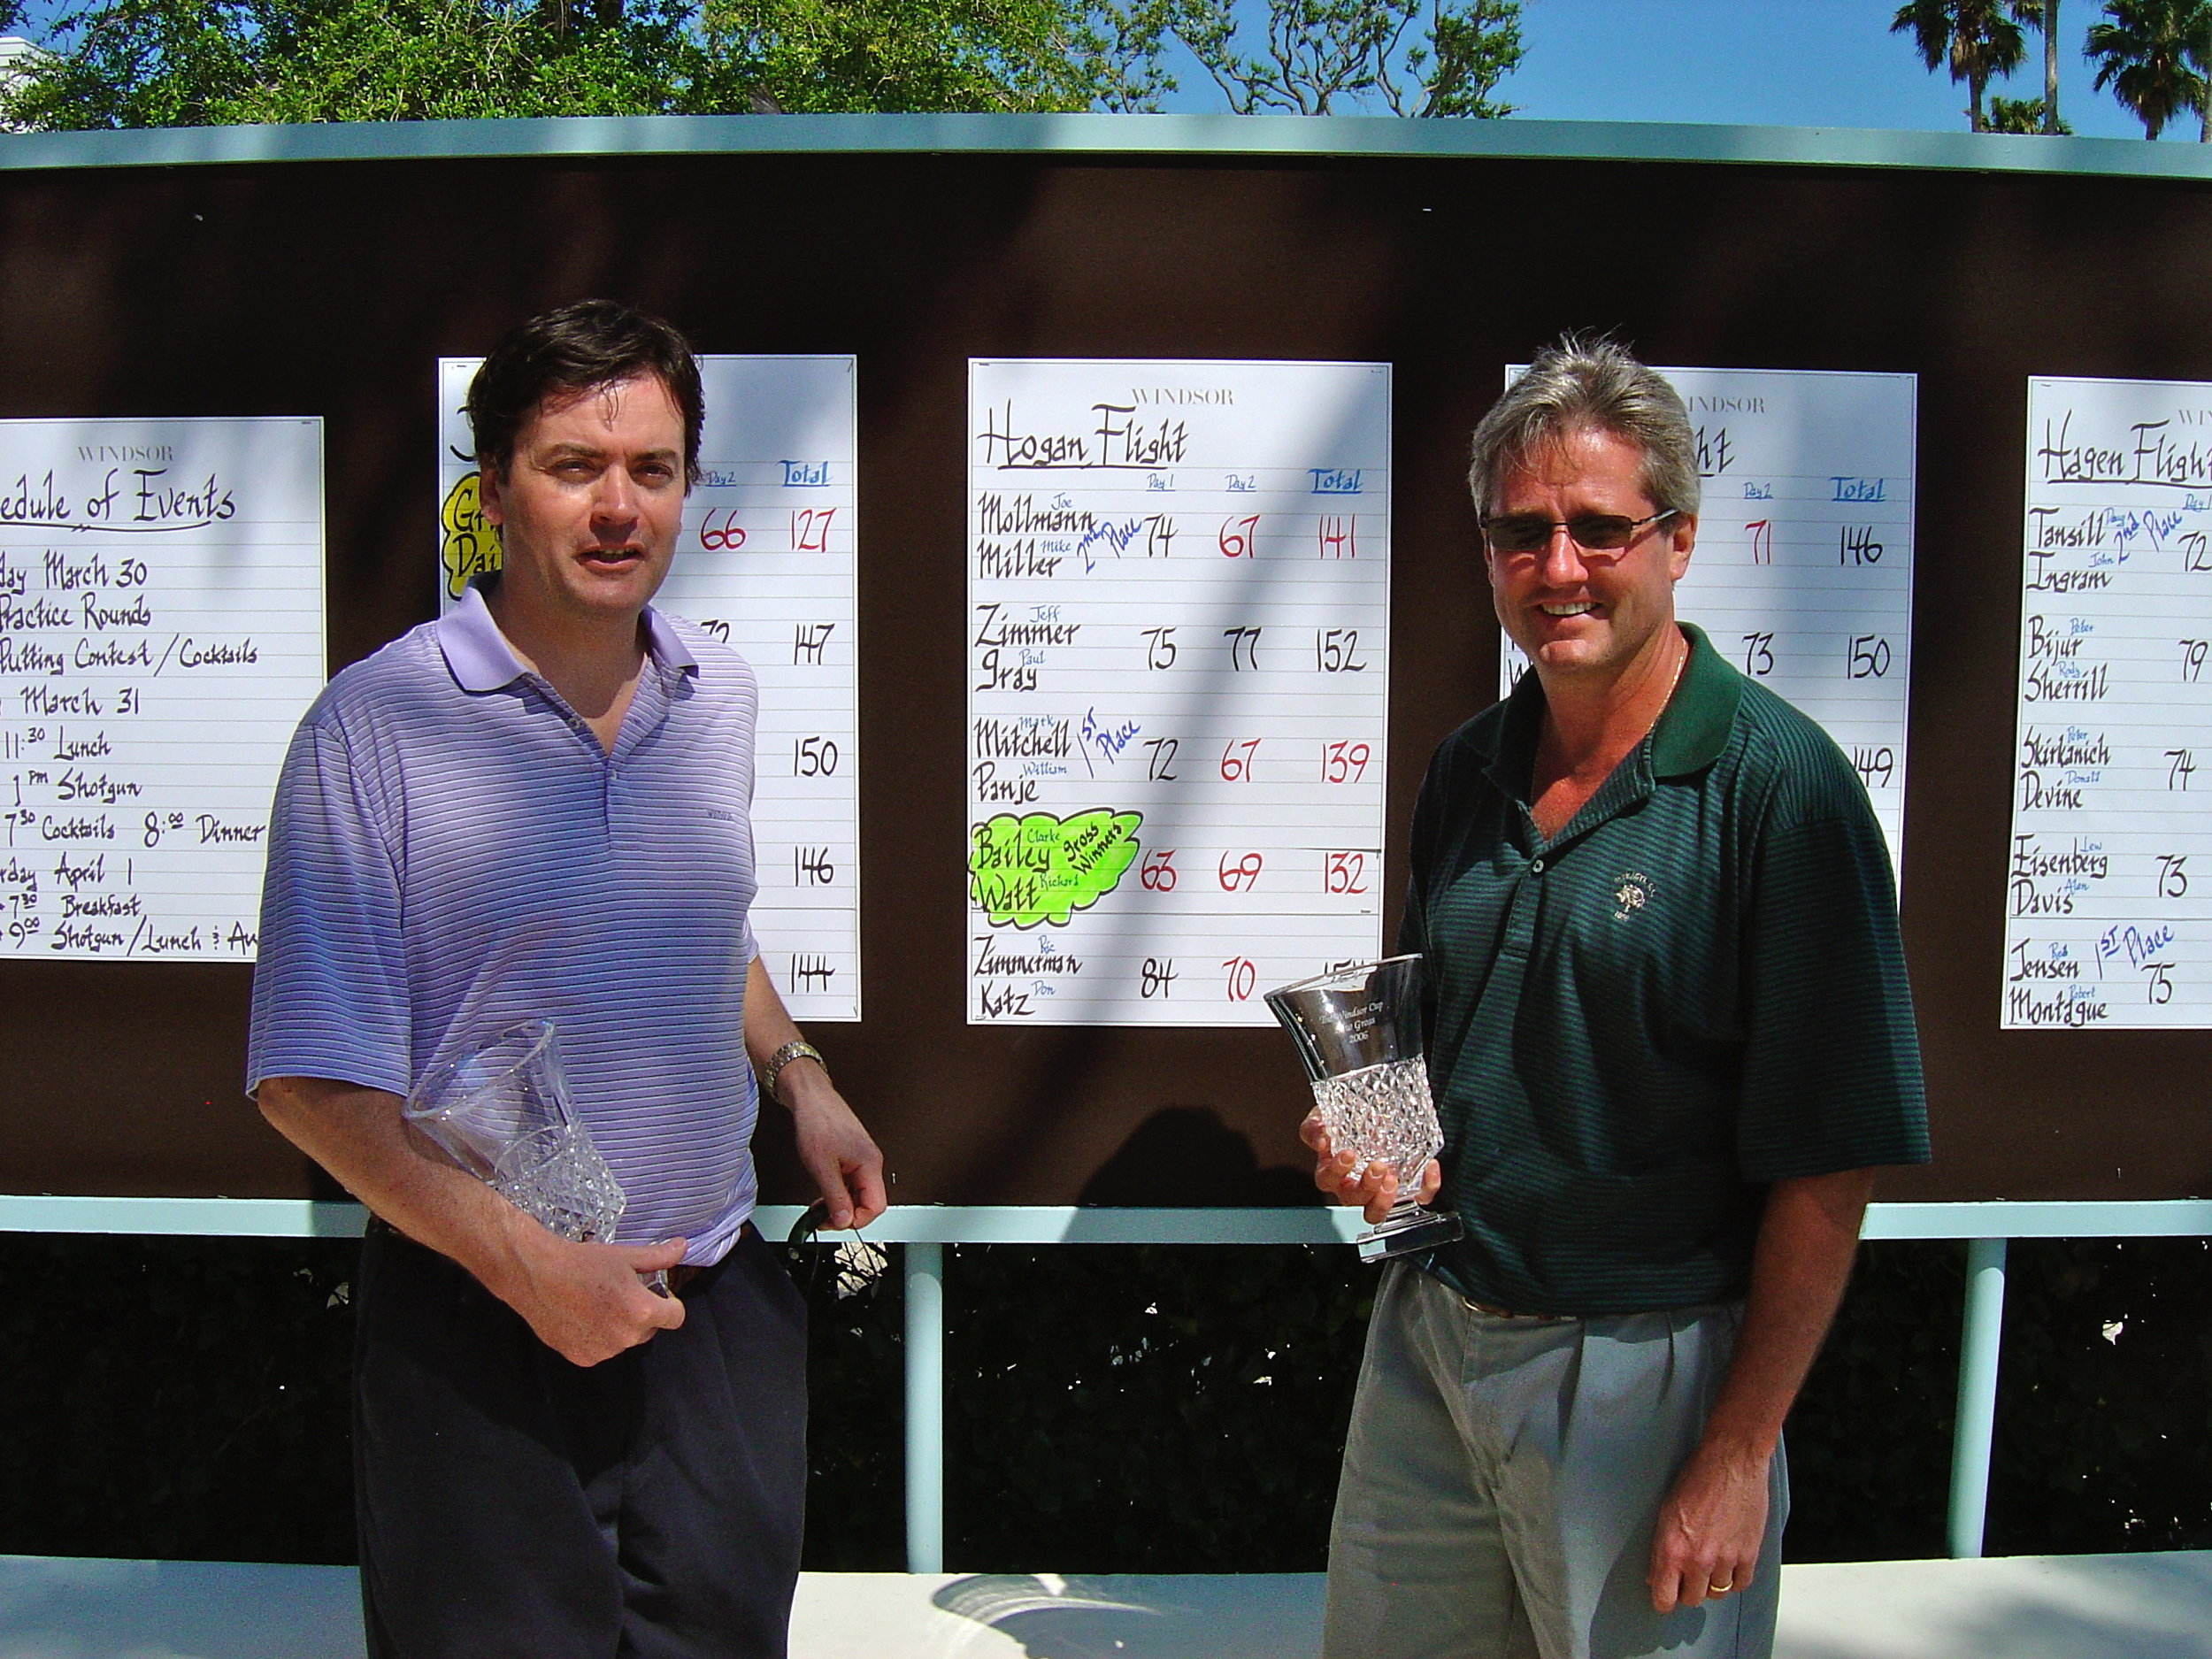 This is Clarke and me having won our flight in the member guest in xyz.